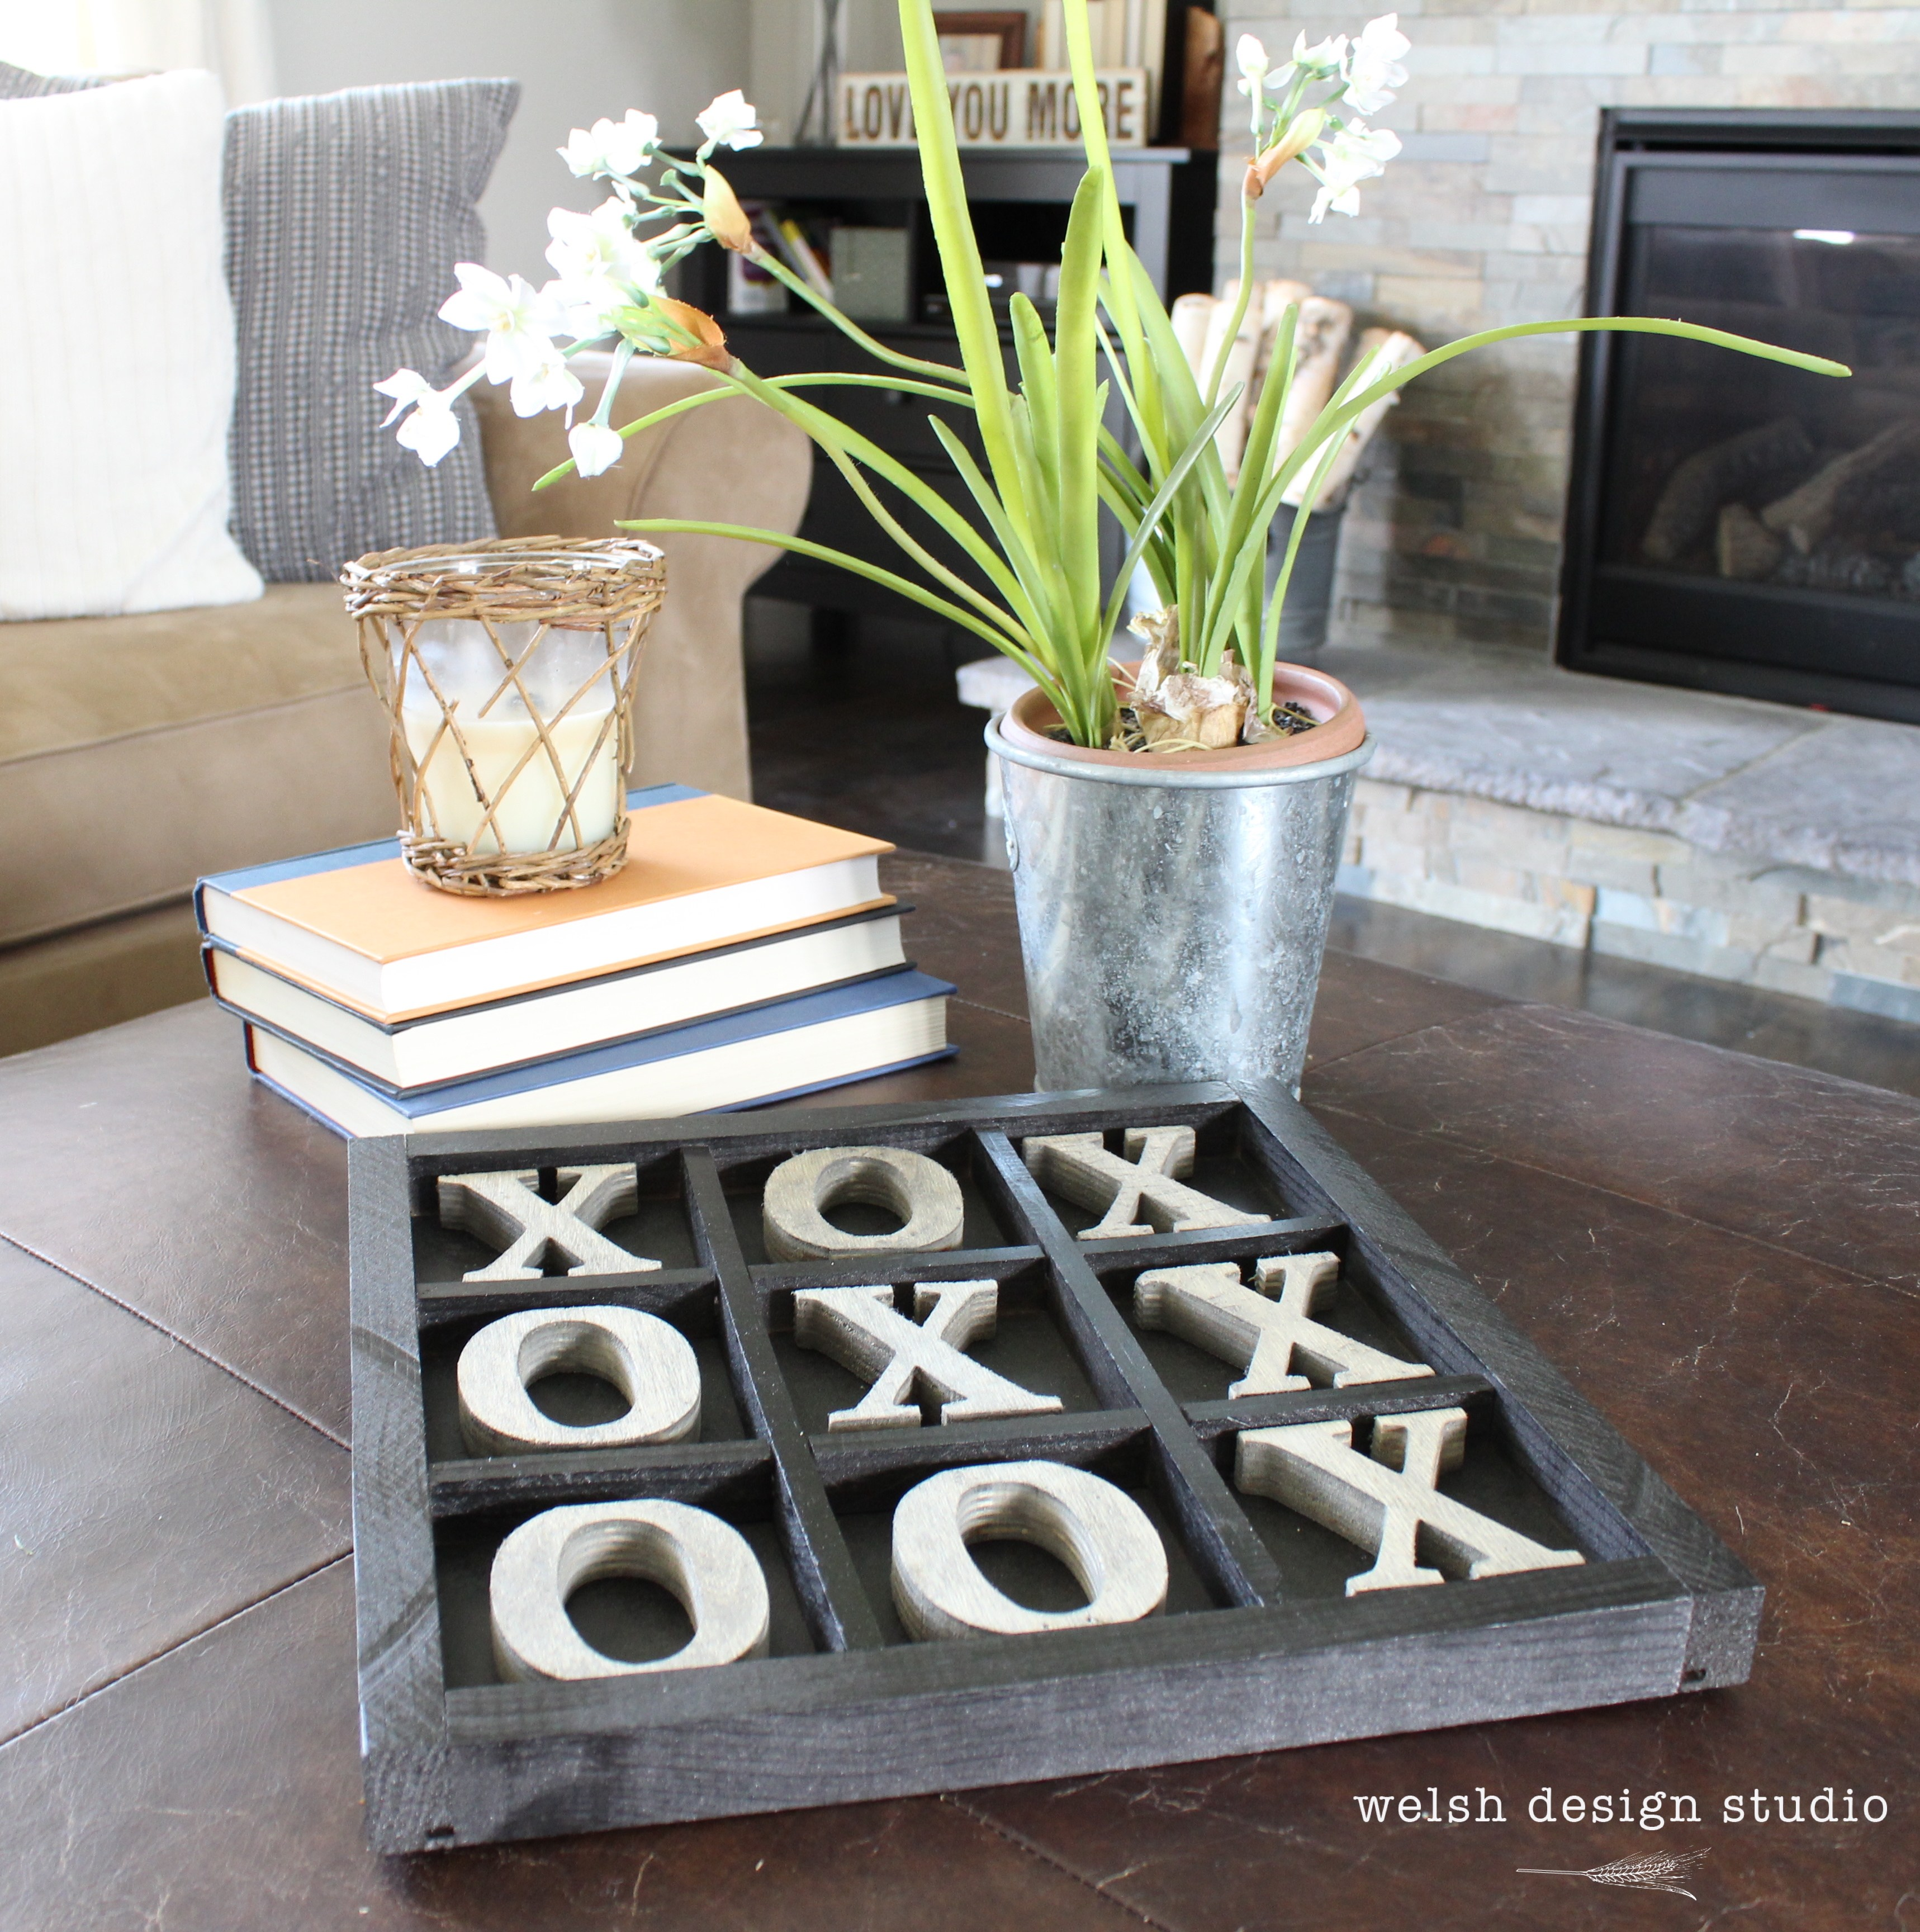 Rustic Tic-Tac-Toe Board from Welsh Design